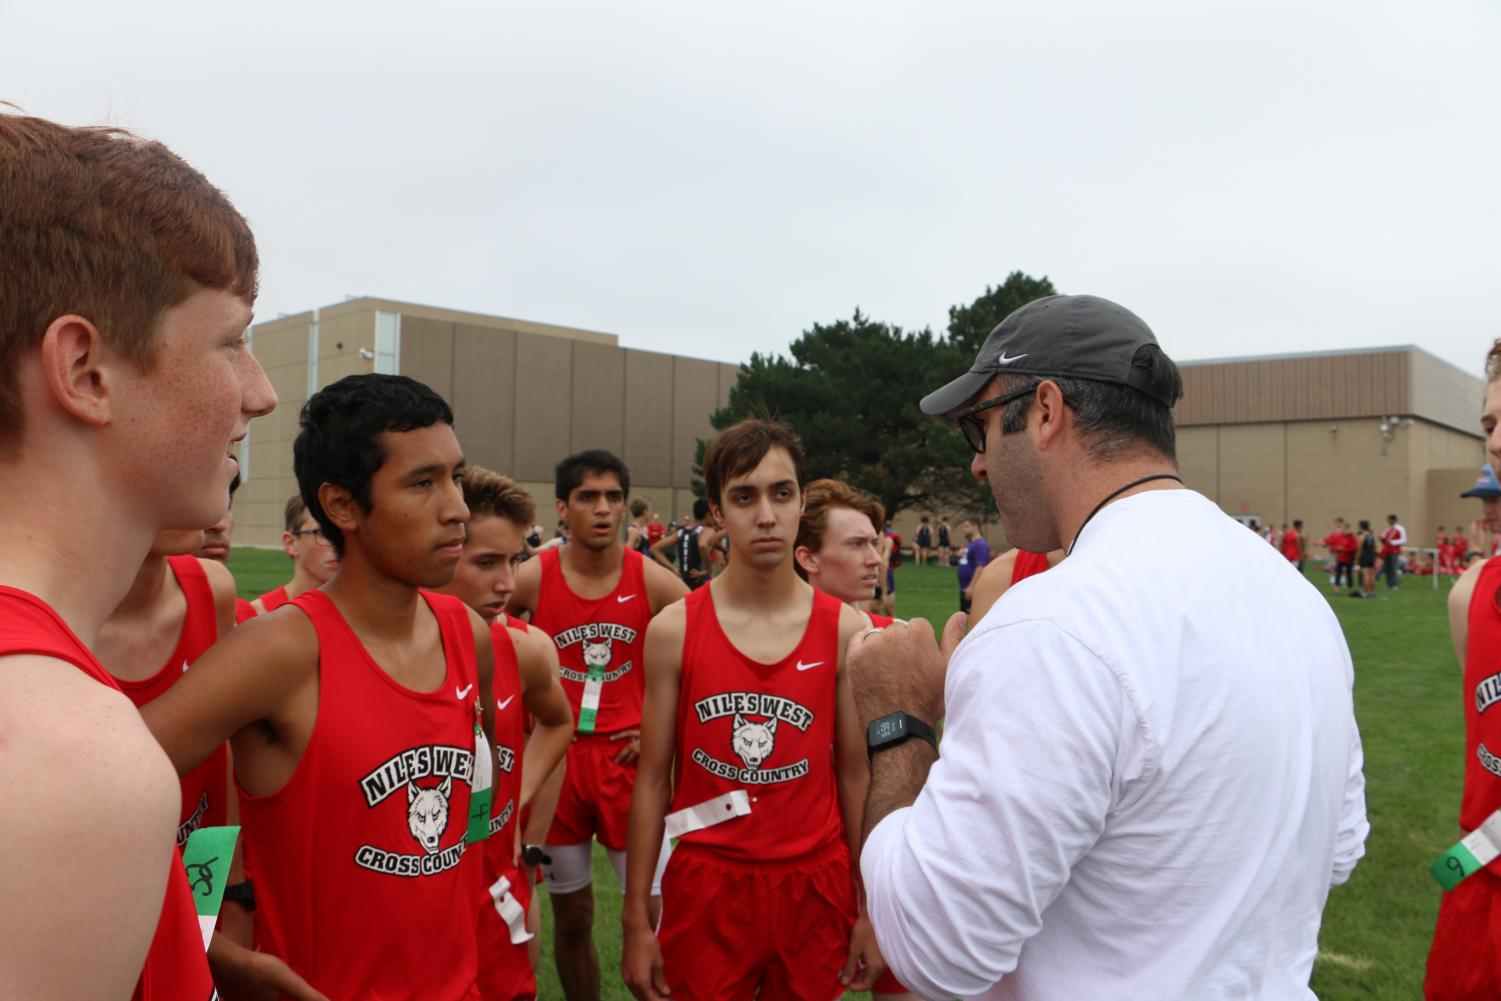 Varsity talking with coach before their first race of the season.